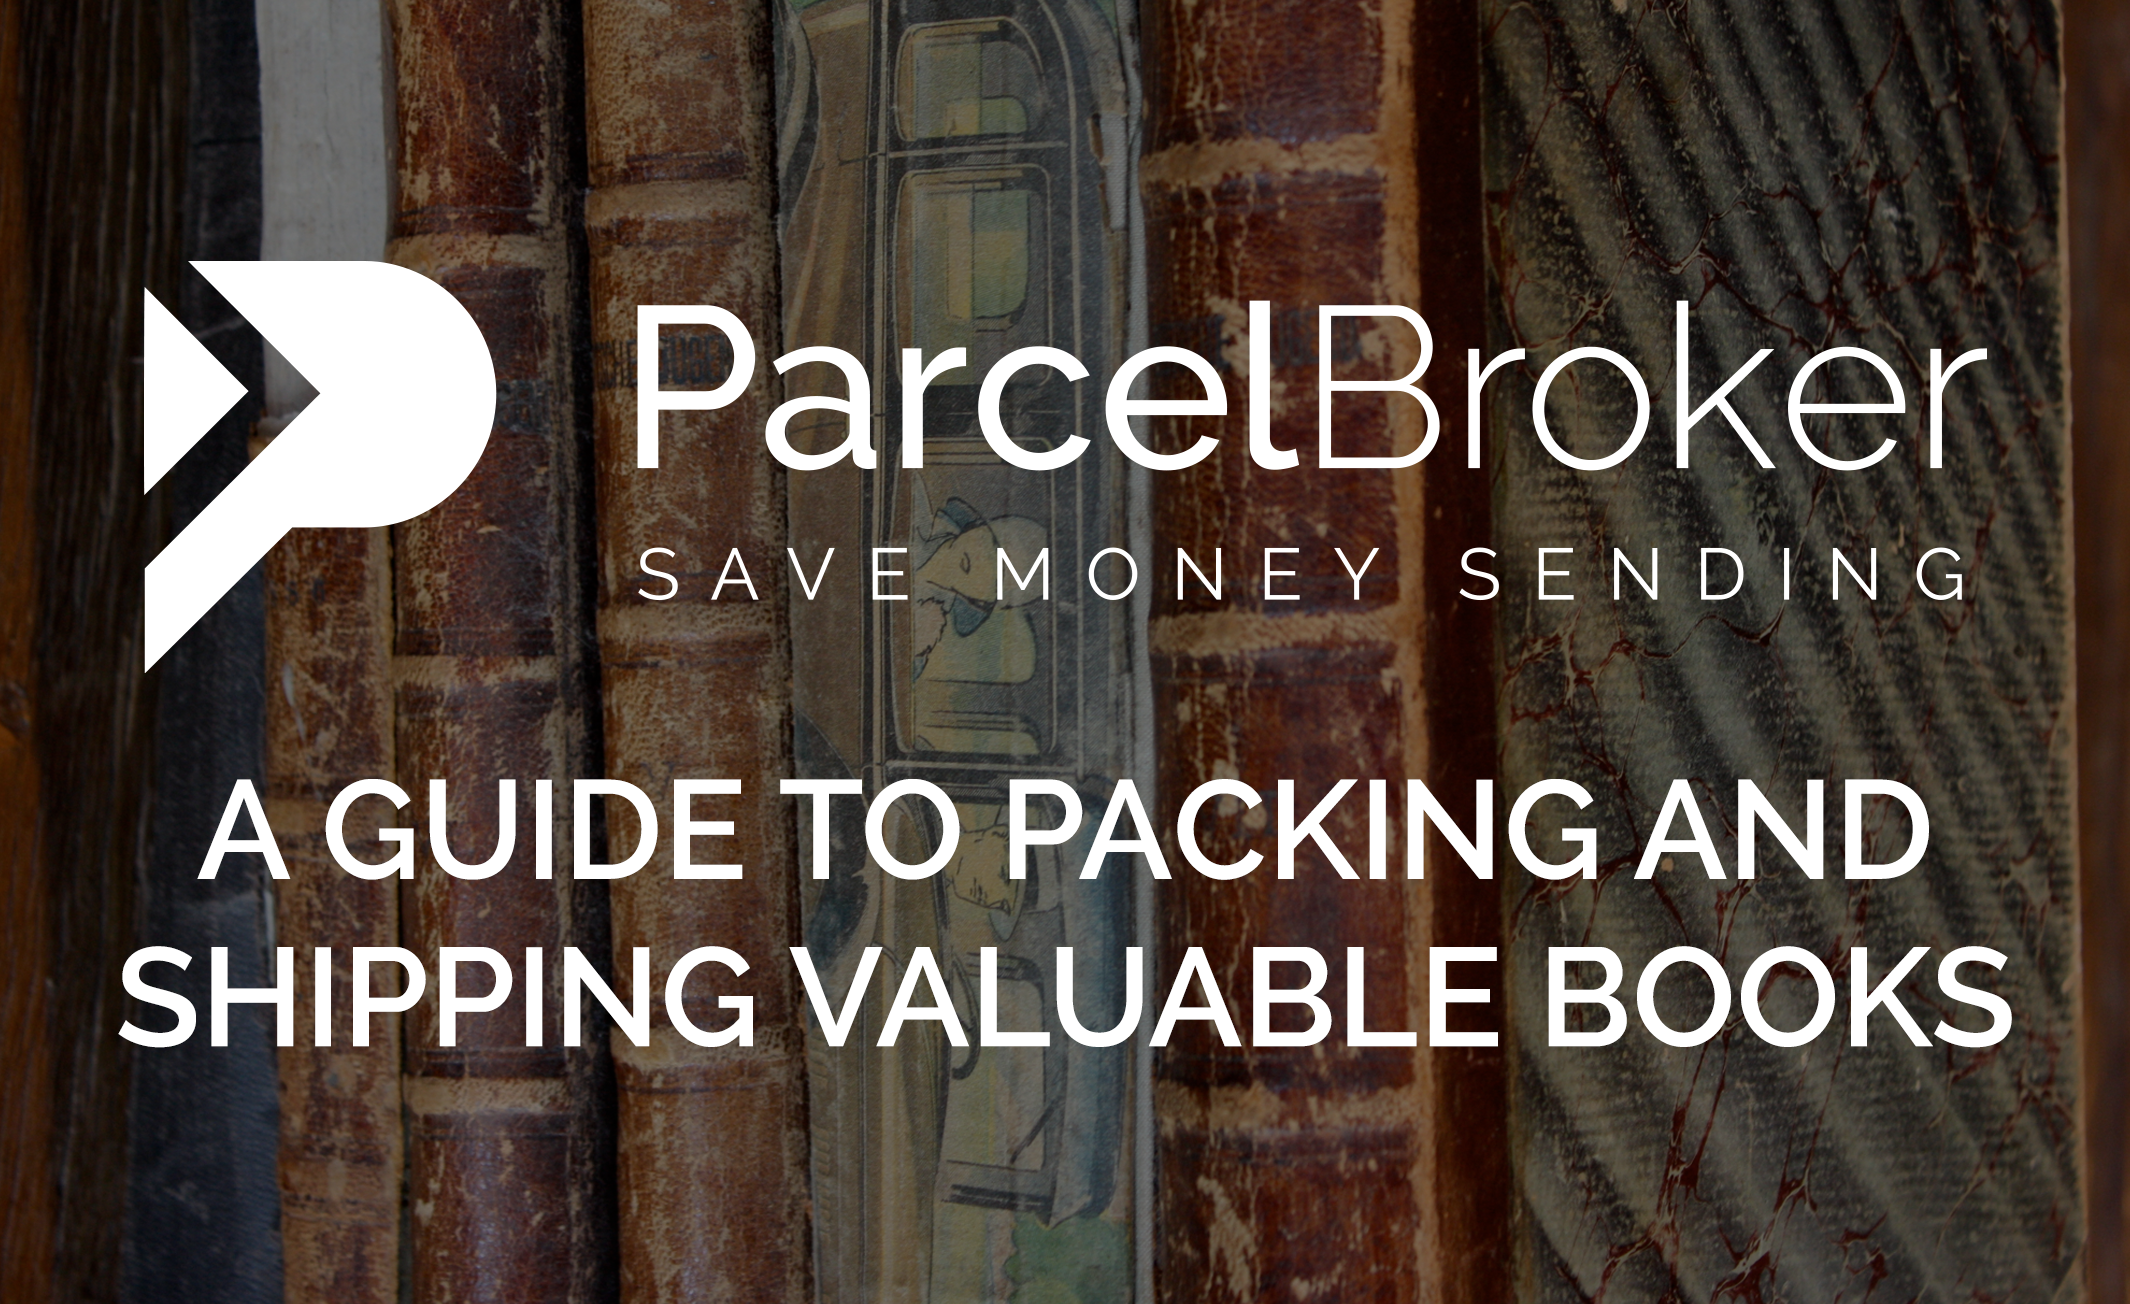 """""""A Guide to Packing and Shipping Valuable Books - ParcelBroker Blog"""